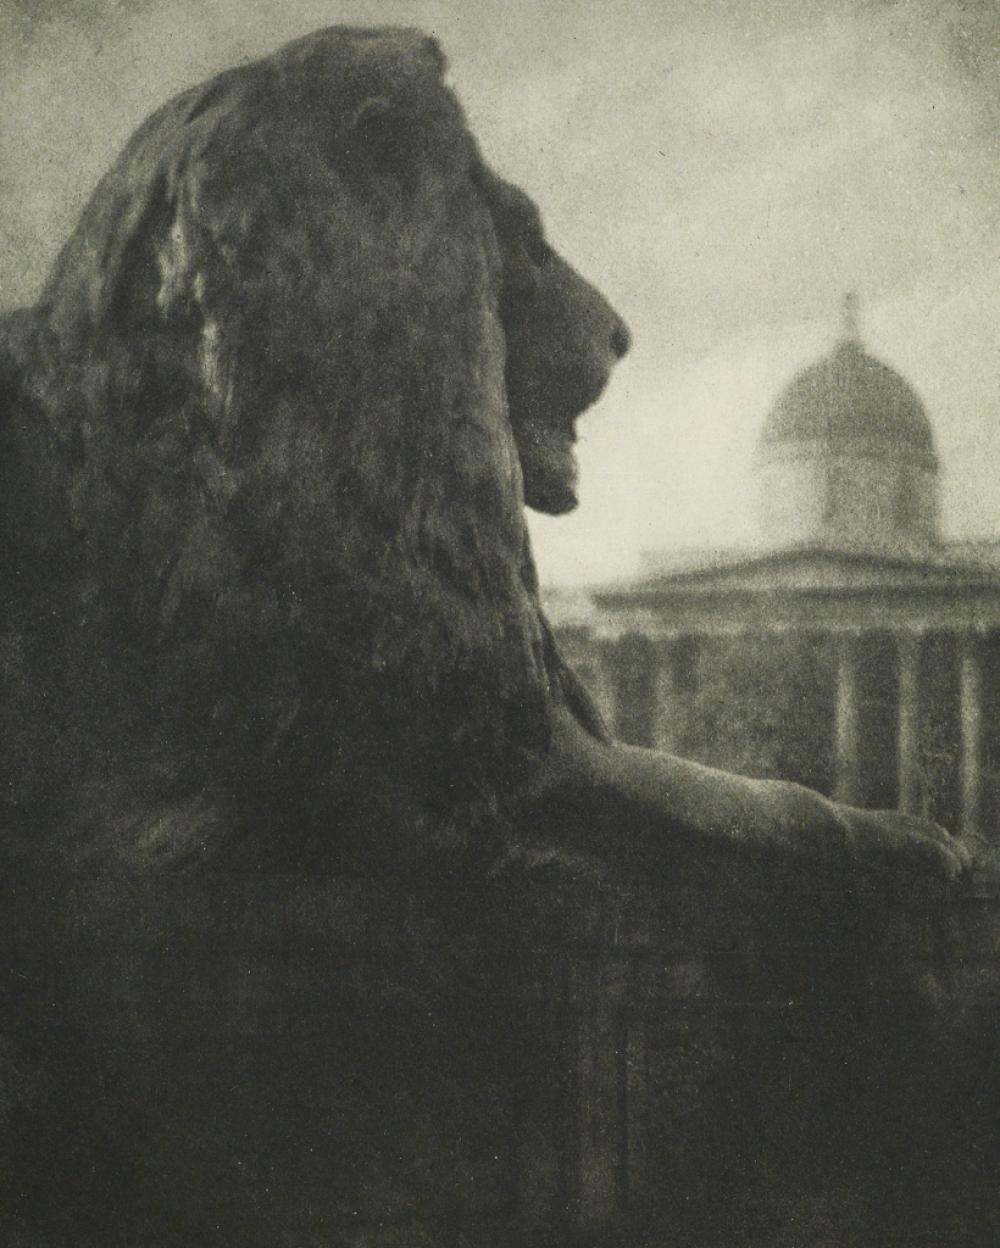 ALVIN LANGDON COBURN (1882-1966) A group of 5 photogravures, including The Bridge--London from Camera Work Number 15, 3 plates from New